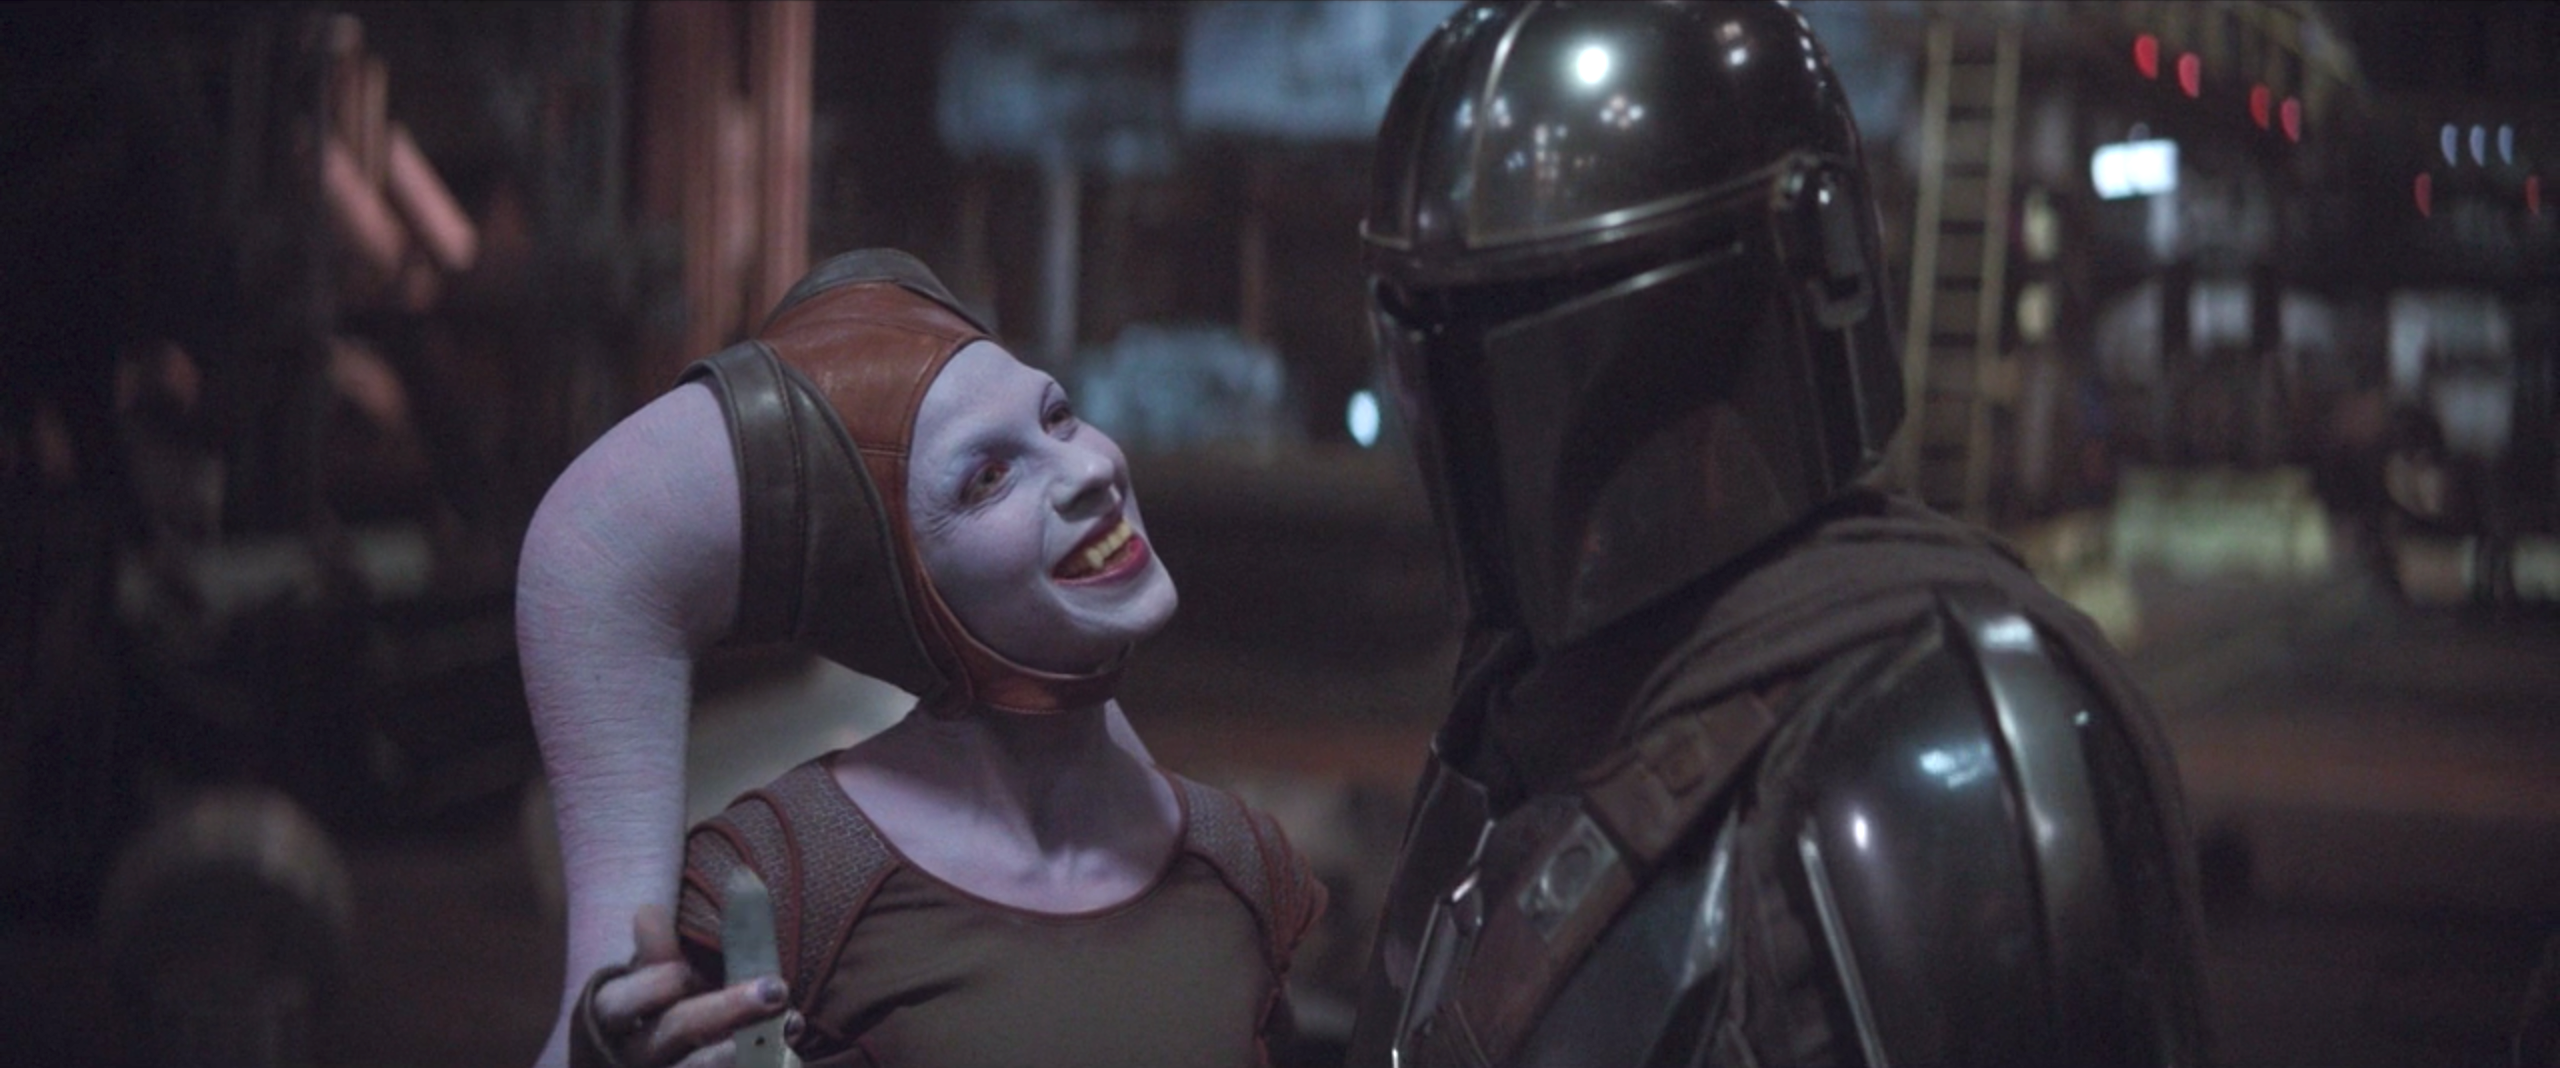 The Mandalorian Suggested Mando Has Sex With His Helmet On